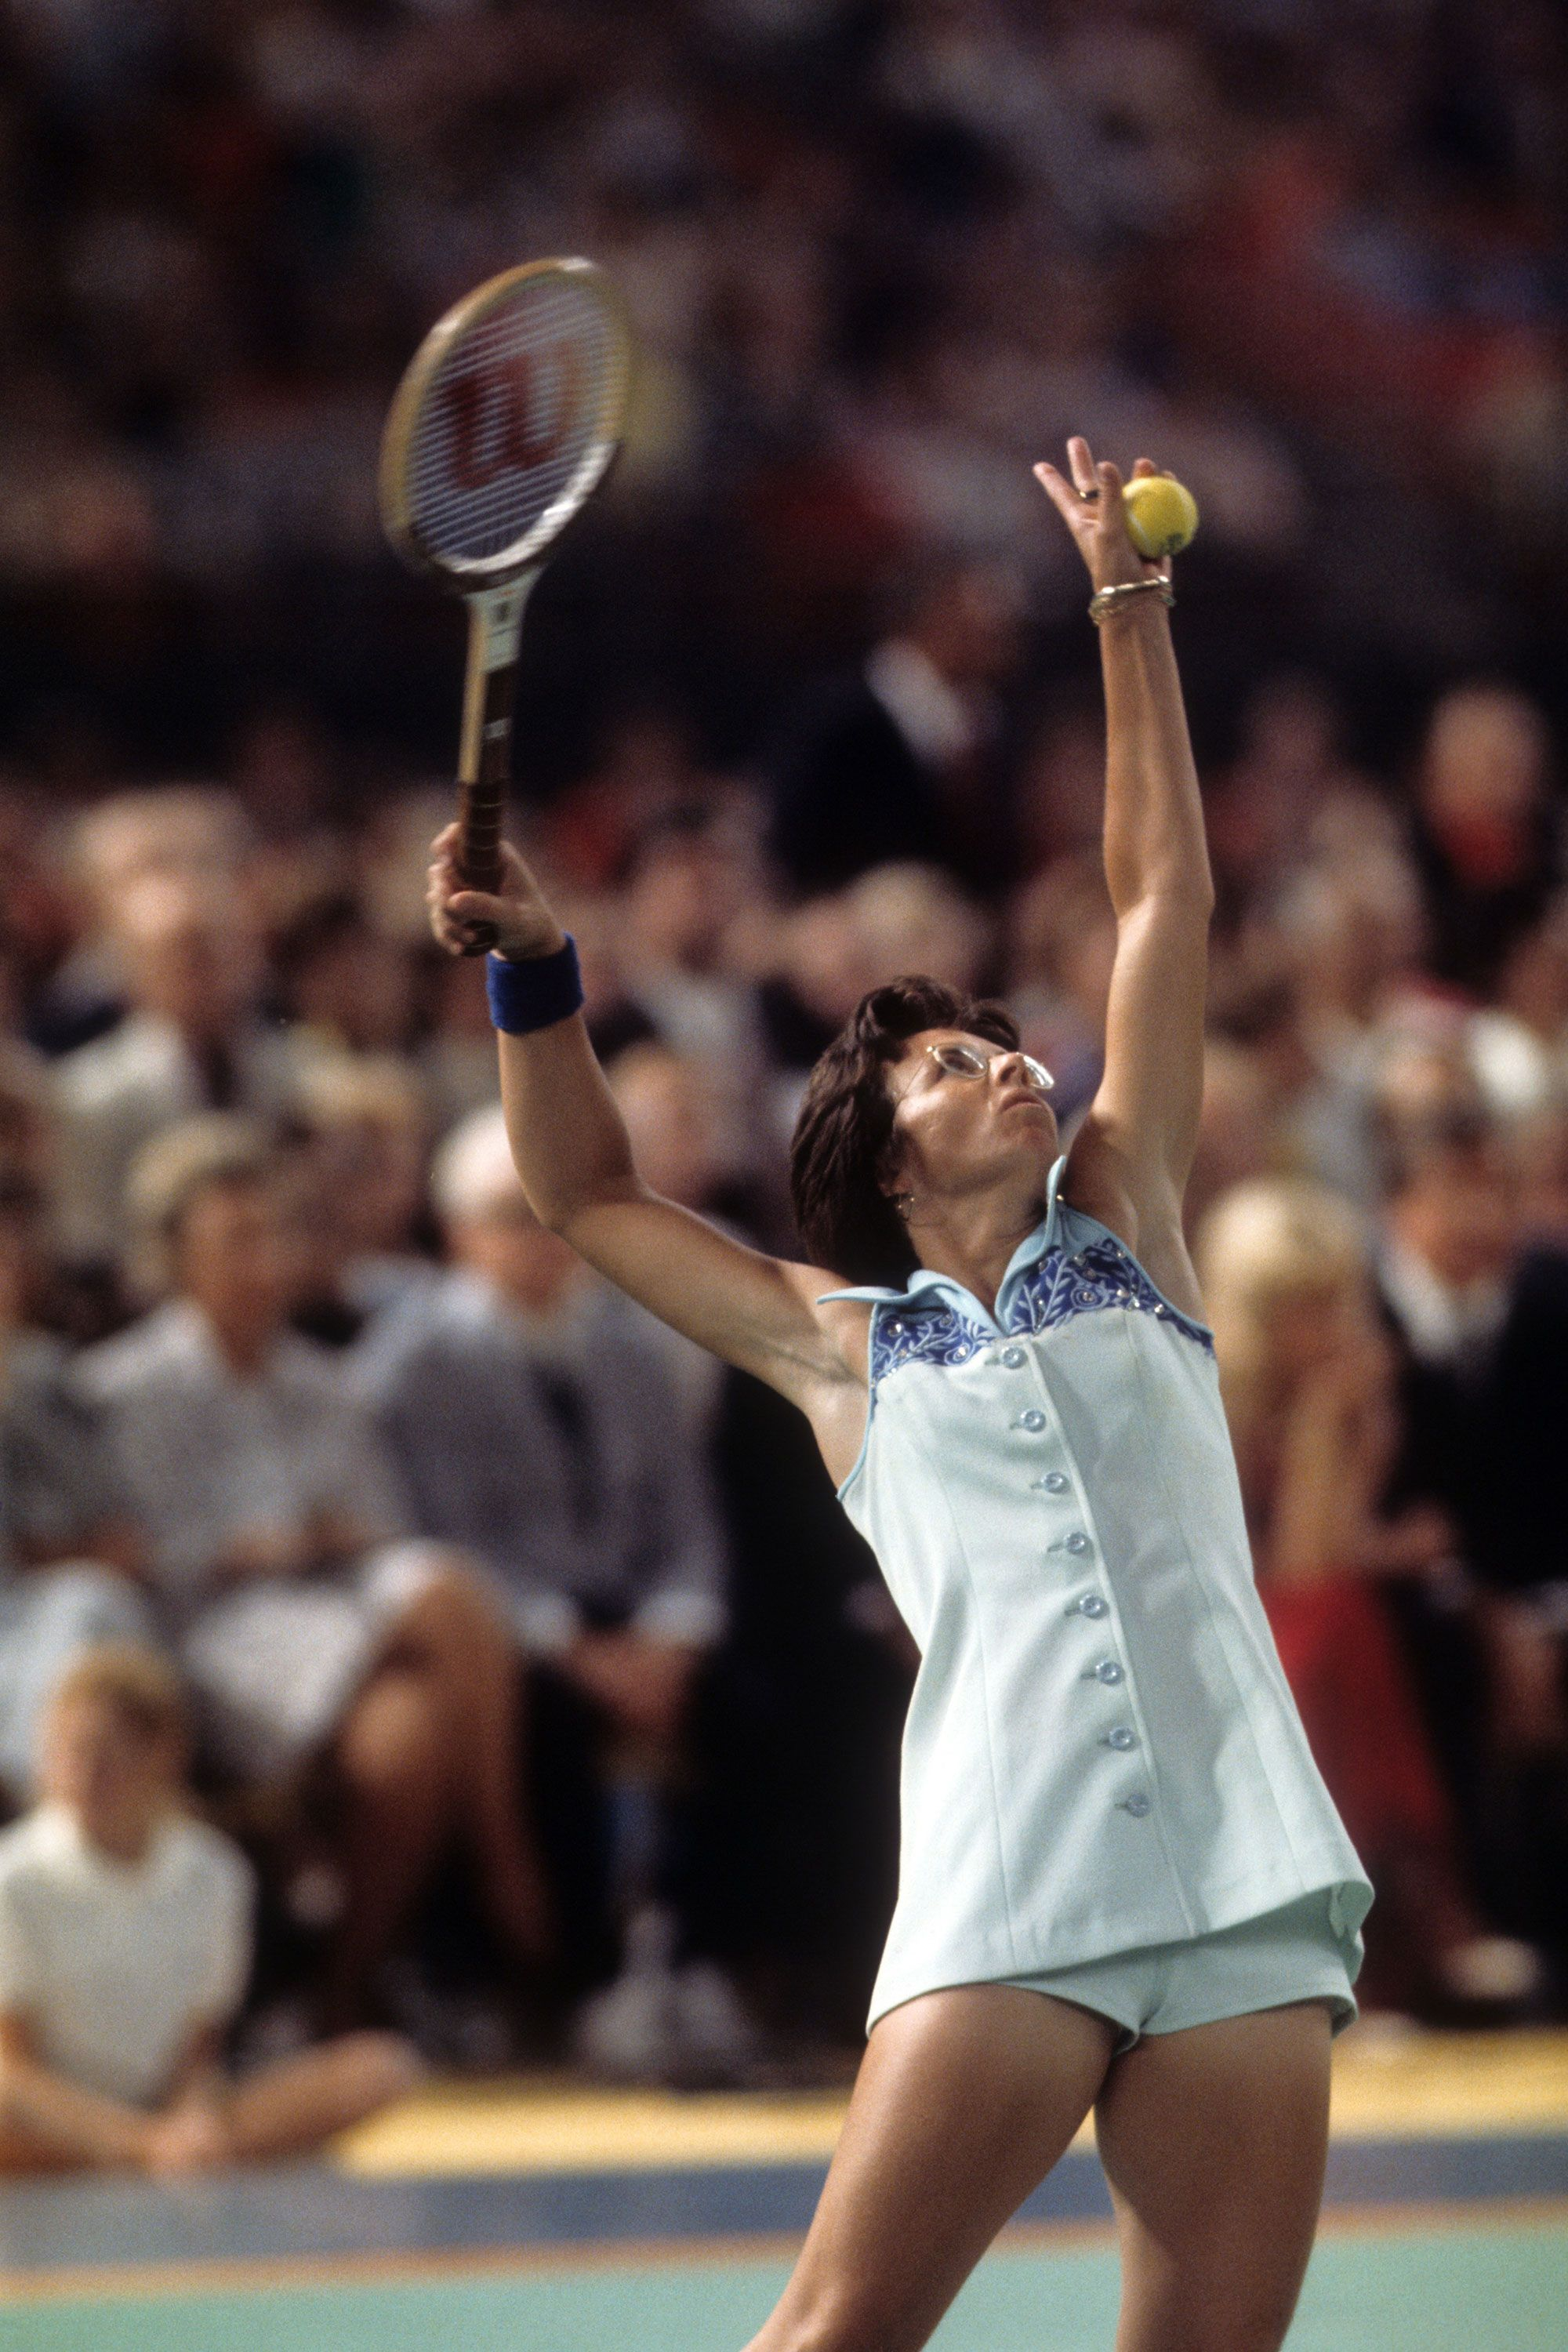 """<p>In 1973, pros Billy Jean King and Bobby Riggs faced offin a tennis game that became knownas """"The Battle of the Sexes."""" Fiftymillion people in the U.S. and 90 million worldwide watched29-year-old King playagainst 55-year-old Riggs at theHouston Astrodome<span class=""""redactor-invisible-space"""" data-verified=""""redactor"""" data-redactor-tag=""""span"""" data-redactor-class=""""redactor-invisible-space"""">. At stake? A winner's prize of $100,000.</span>King made a stunning comebackafter falling behind during the first set. She won all three sets, winning 6 to 3 in the third set. Female tennis plays are now more accepted, but similar """"Battles of the Sexes"""" have taken place since King bested Riggs, including in 2013 when Chinese tennis proLi Na beatNovak Djokovic 3-2.</p>"""